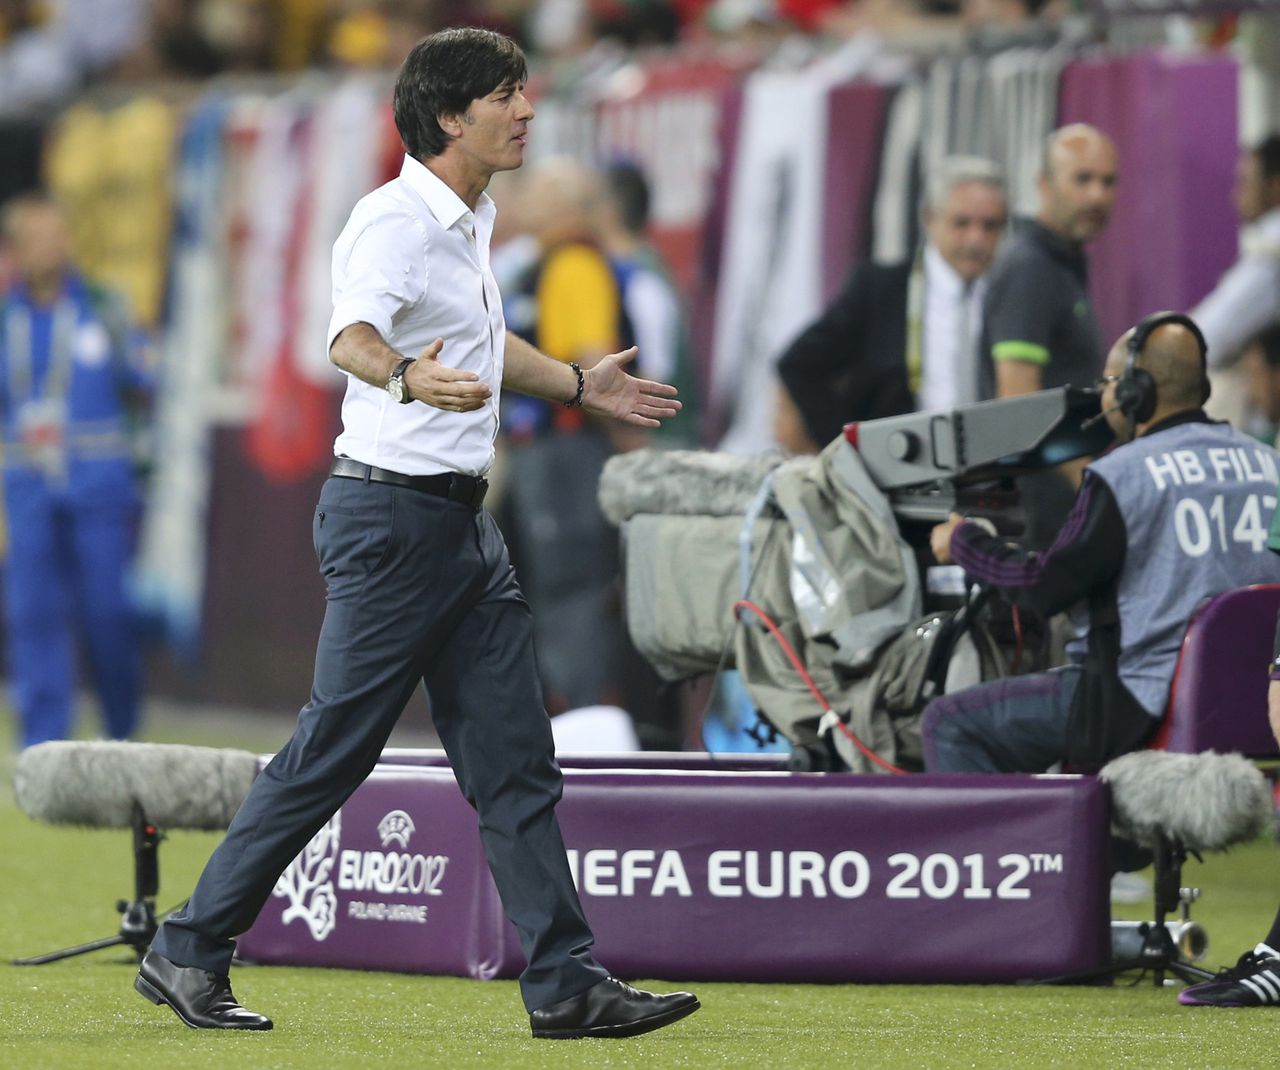 Germany's coach Joachim Loew reacts during their Group B Euro 2012 soccer match against Portugal at the new stadium in Lviv, June 9, 2012. REUTERS/Thomas Bohlen (UKRAINE - Tags: SPORT SOCCER)